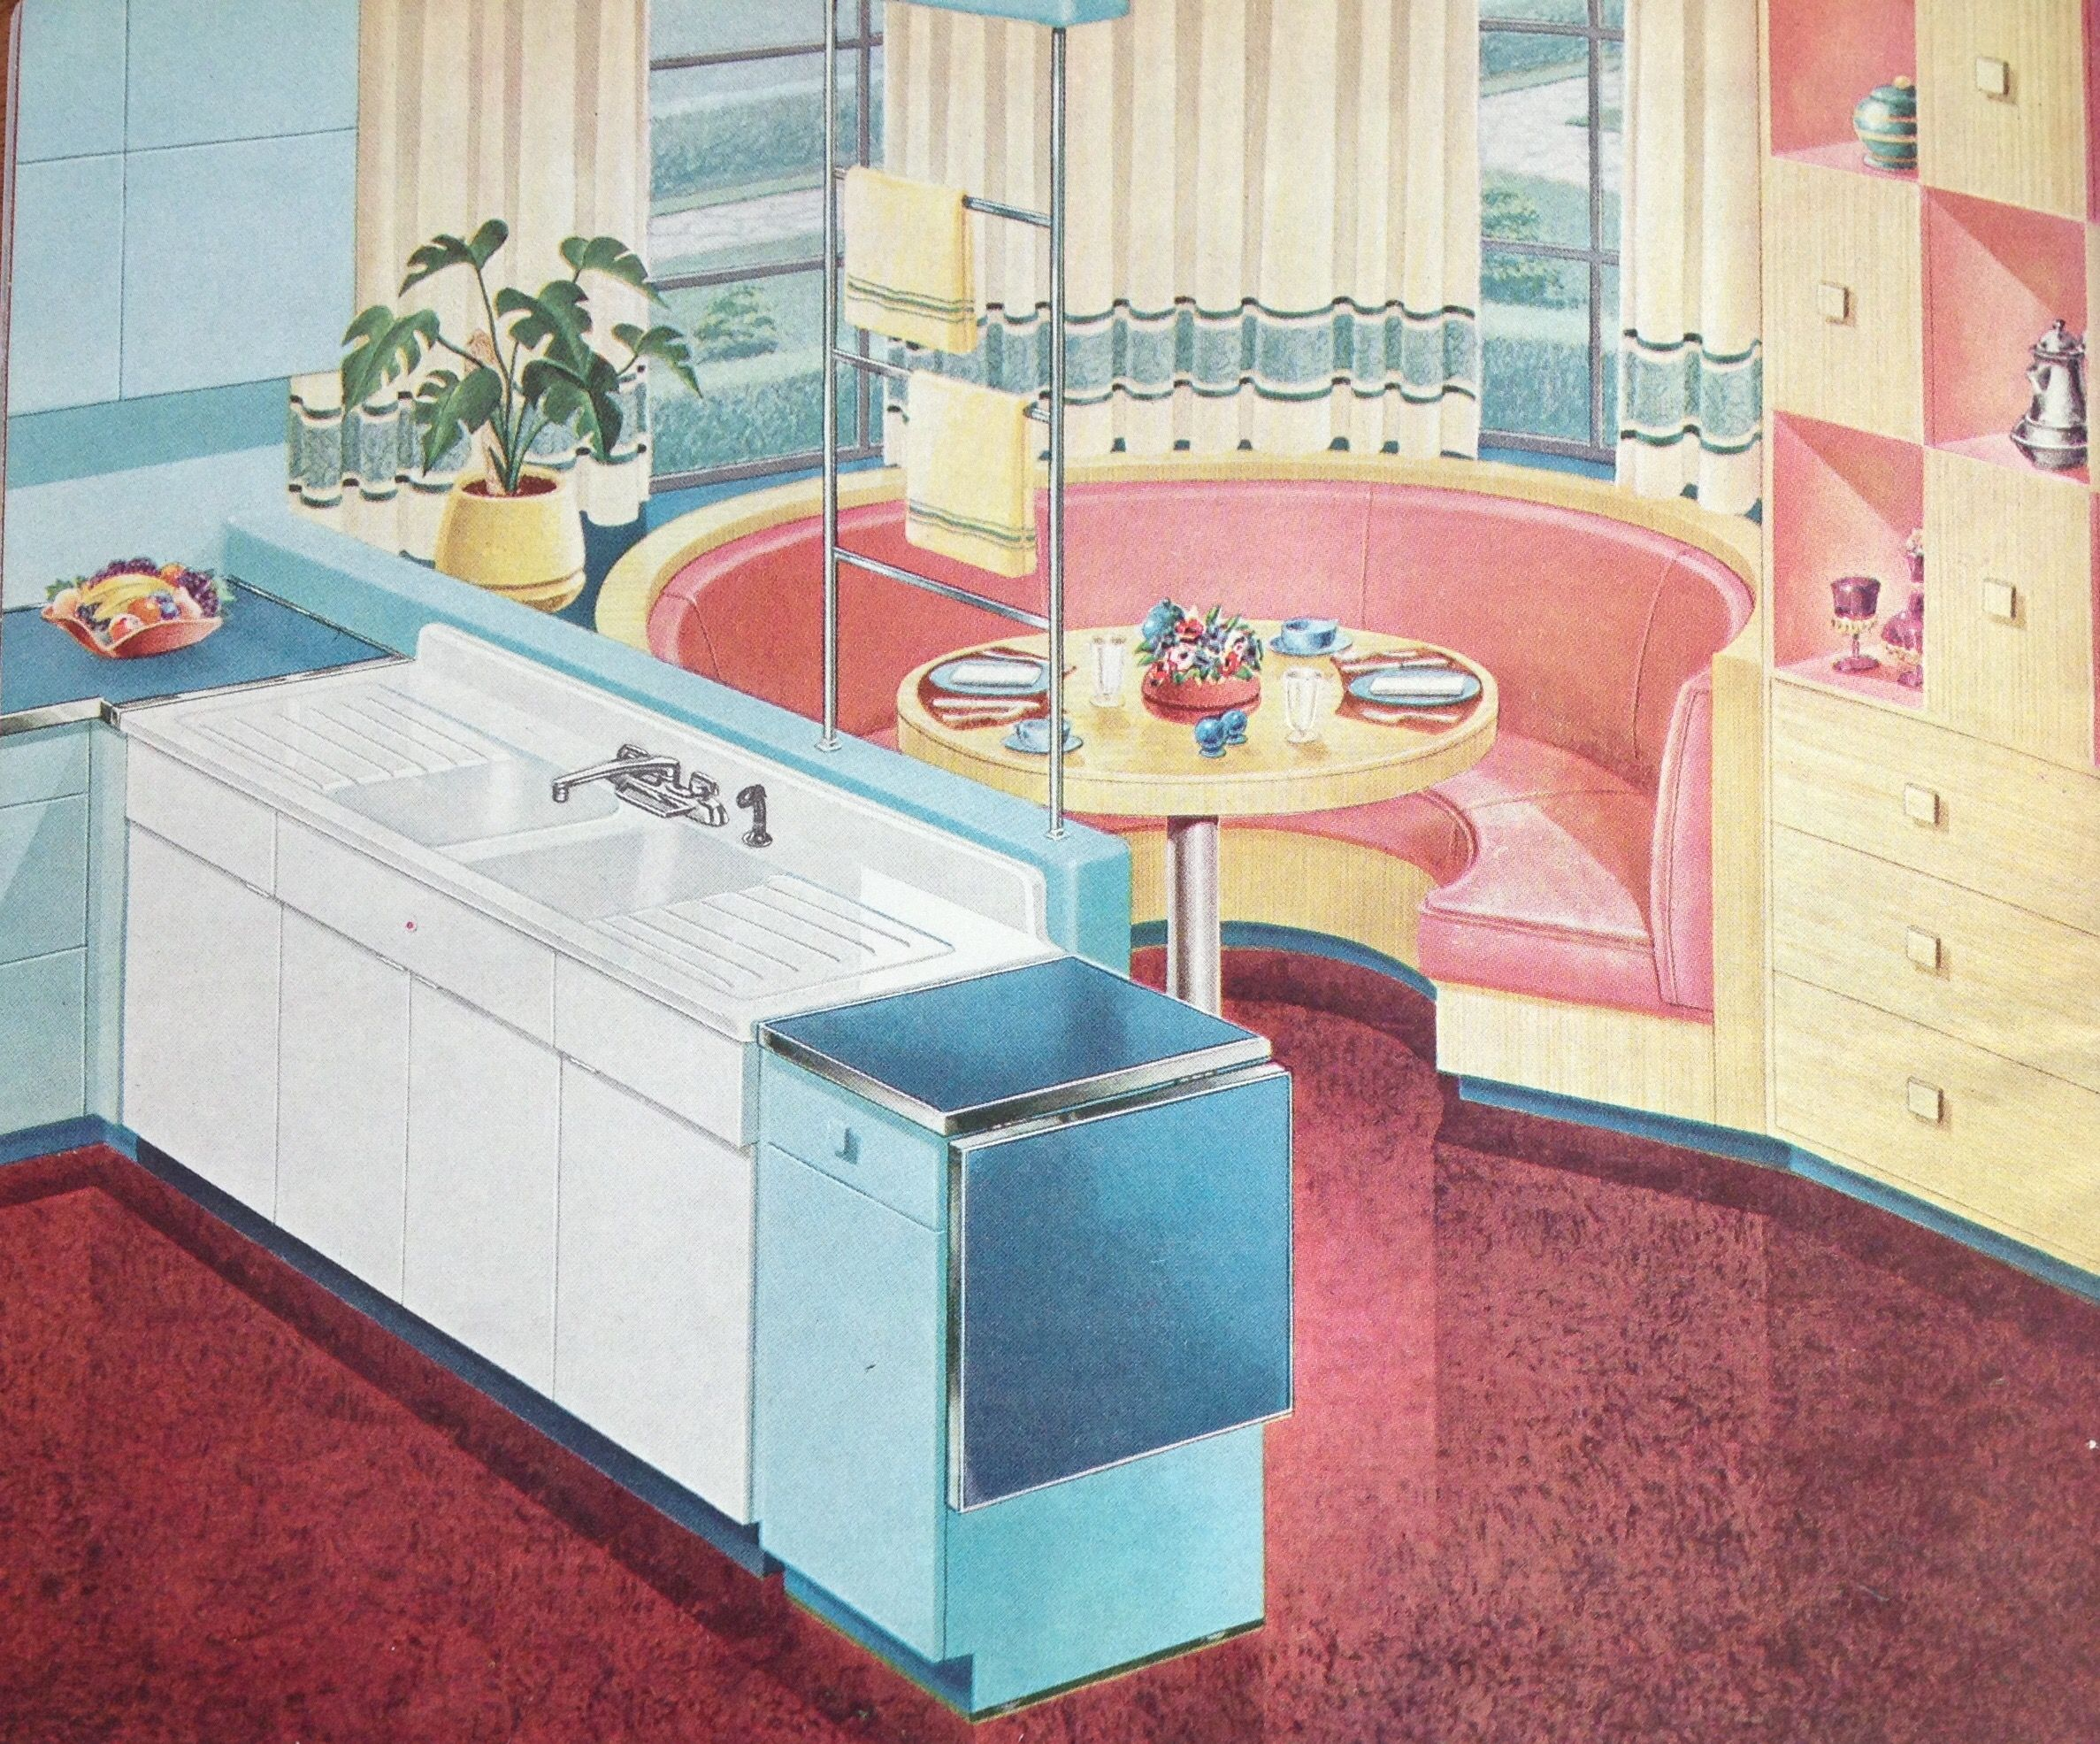 This is from a 1950 American Standard kitchen and bath catalog ...